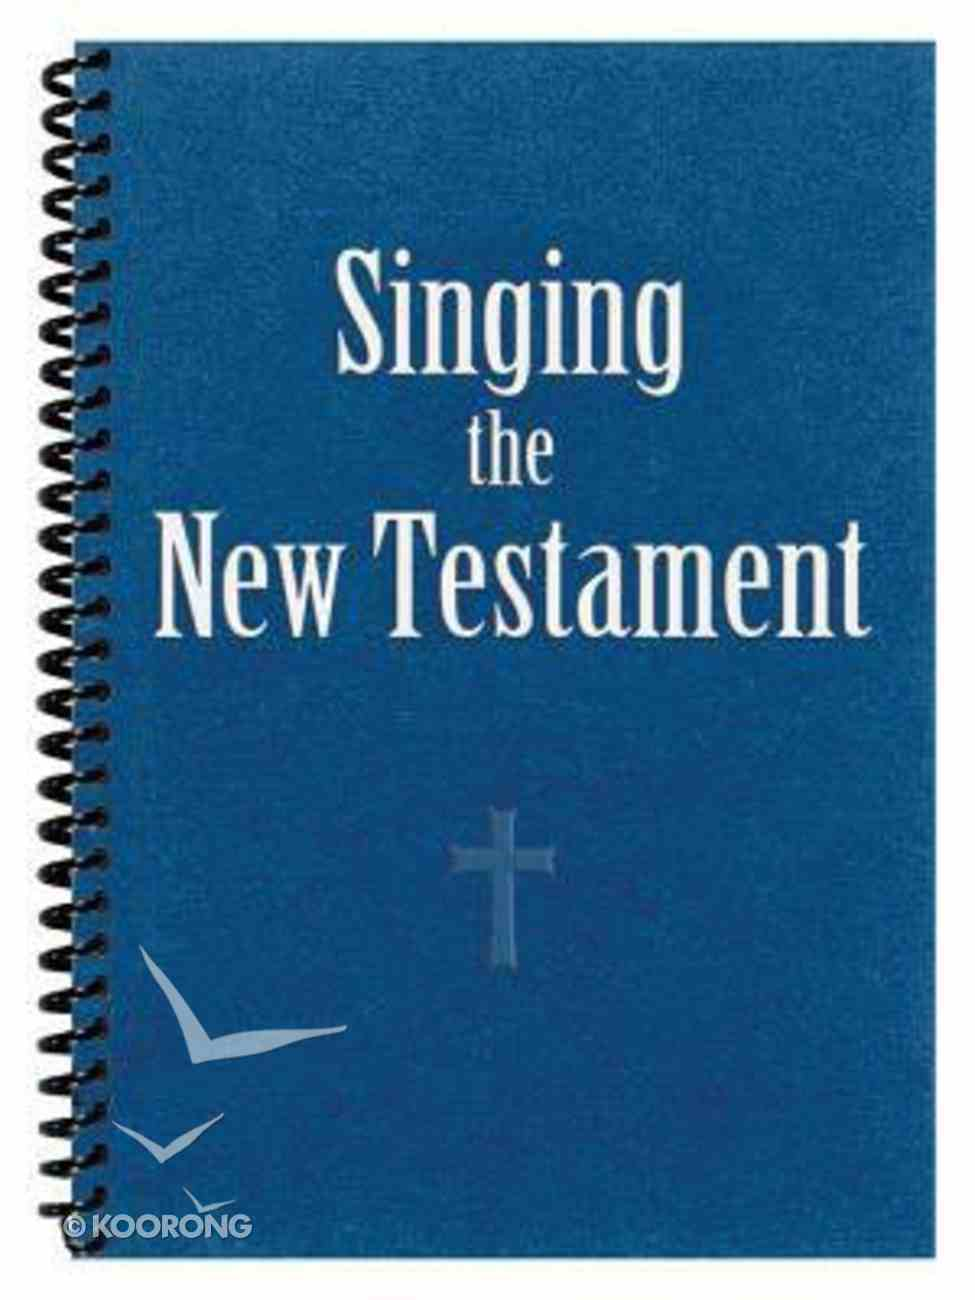 Singing the New Testament (Songbook) Paperback